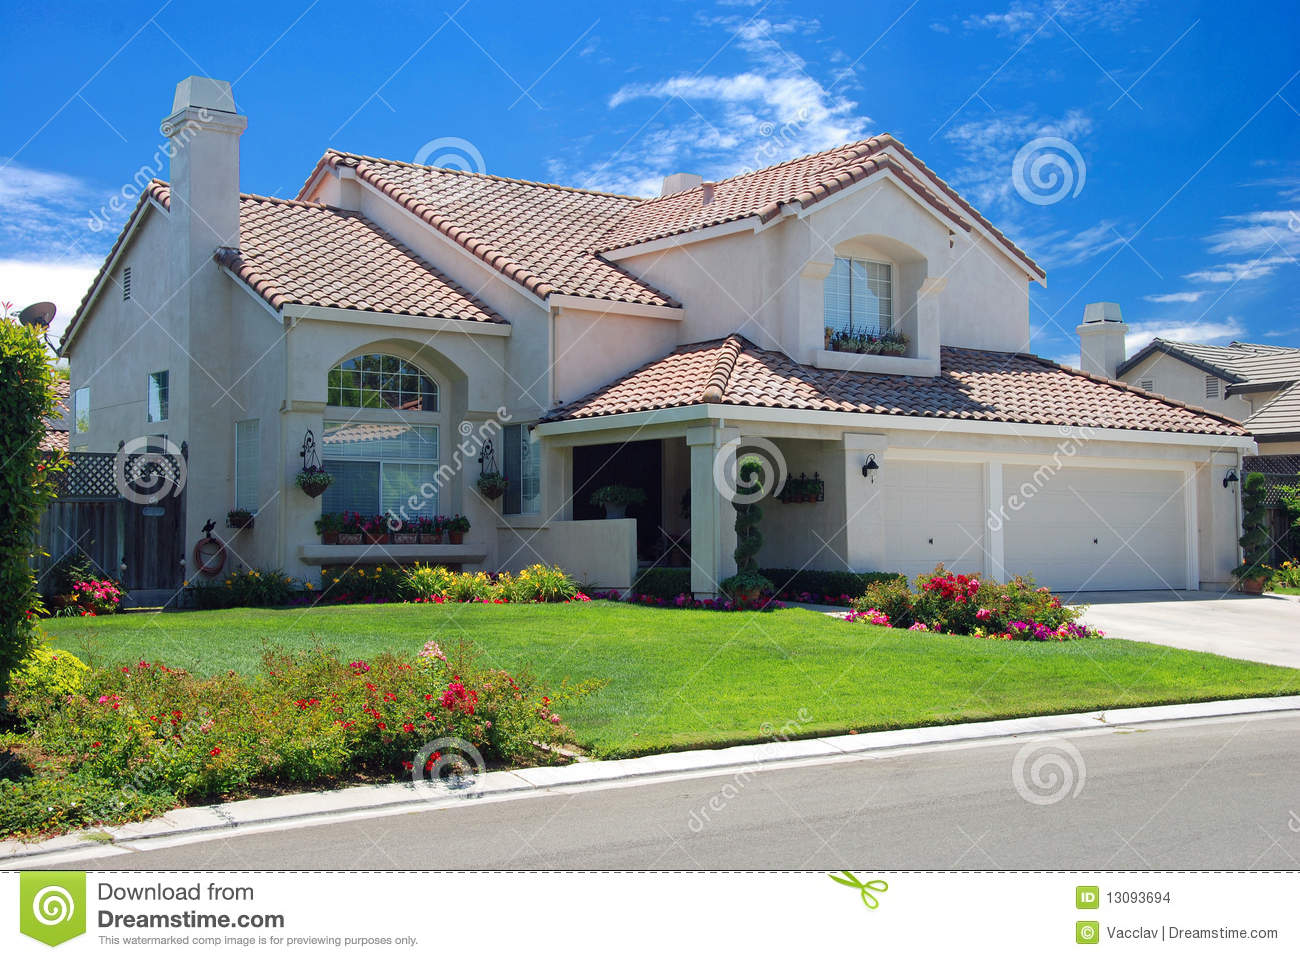 New american dream home stock images image 13093694 for New american homes